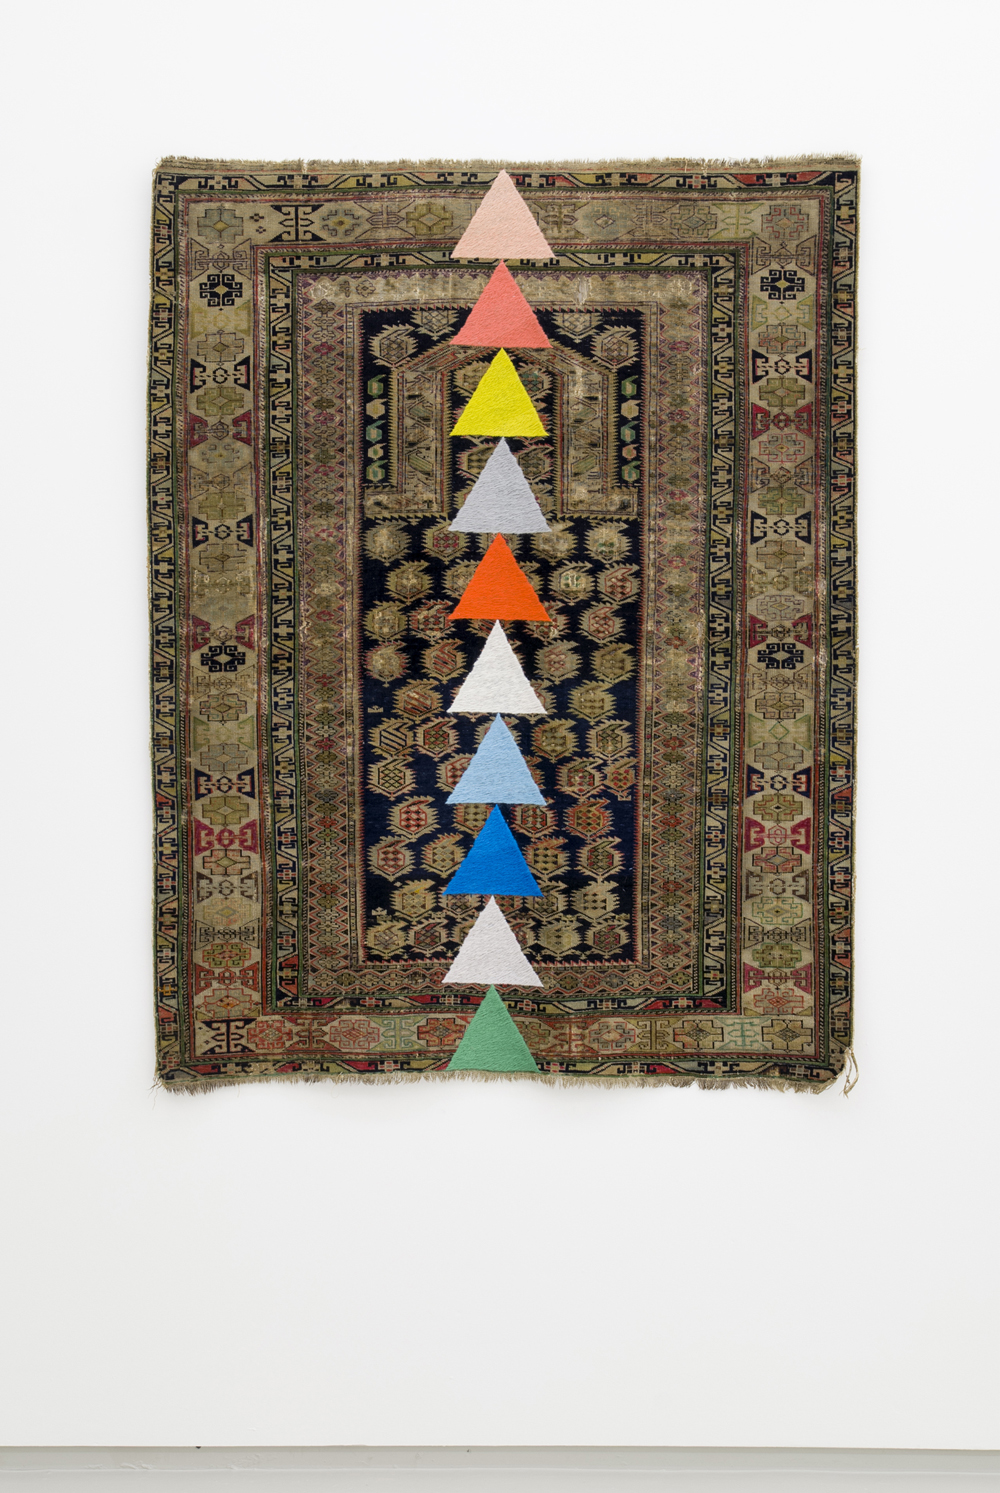 Fiona Curran,  Something Has Been Decided , 2013, Embroidery on carpet with felt tip, 137 x 105 cm